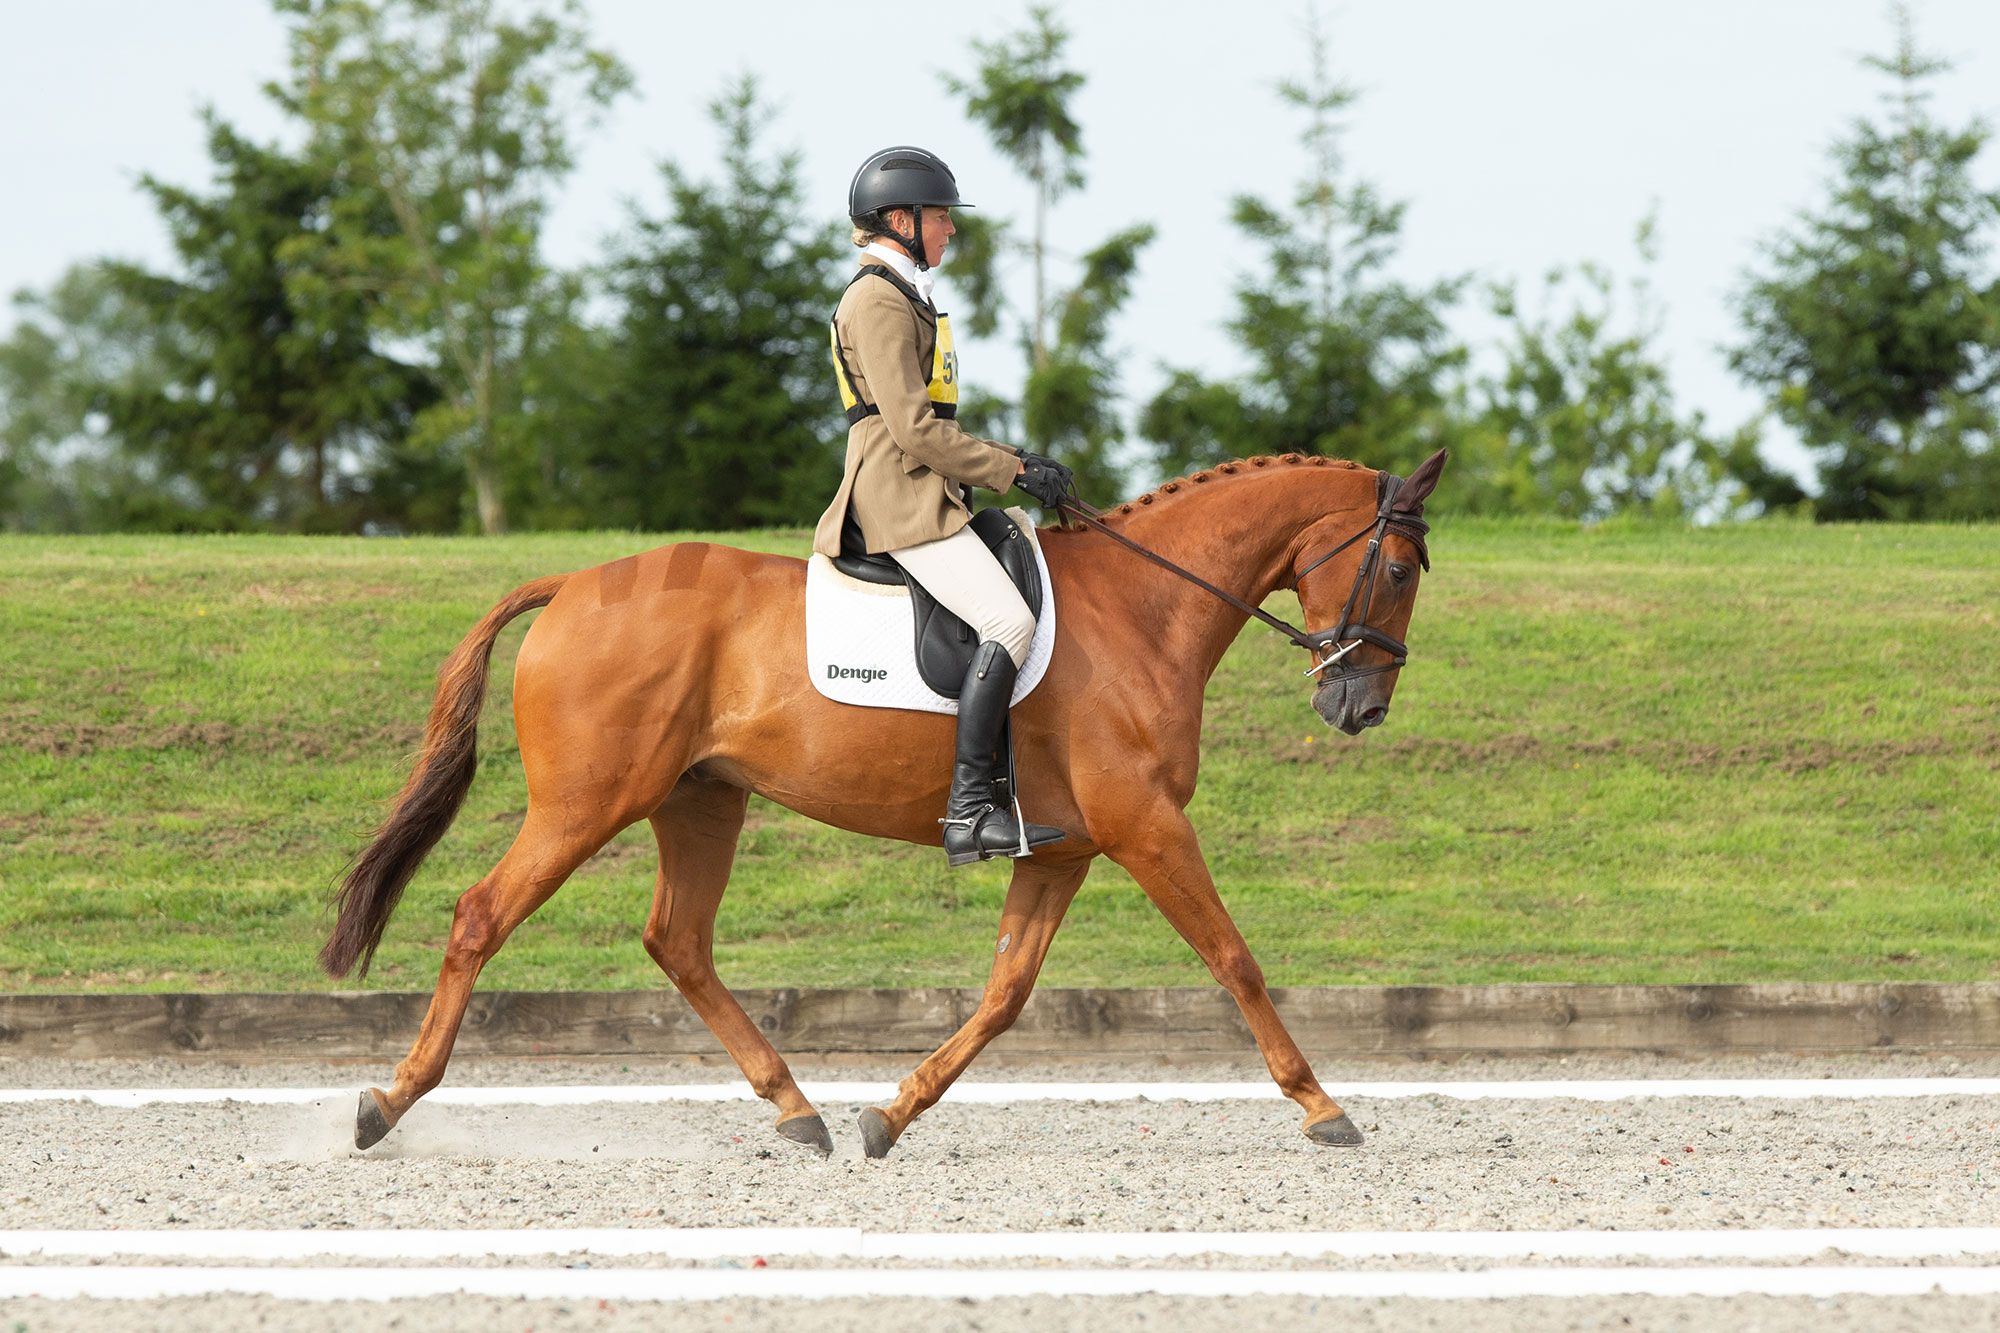 horse and rider in dressage arena